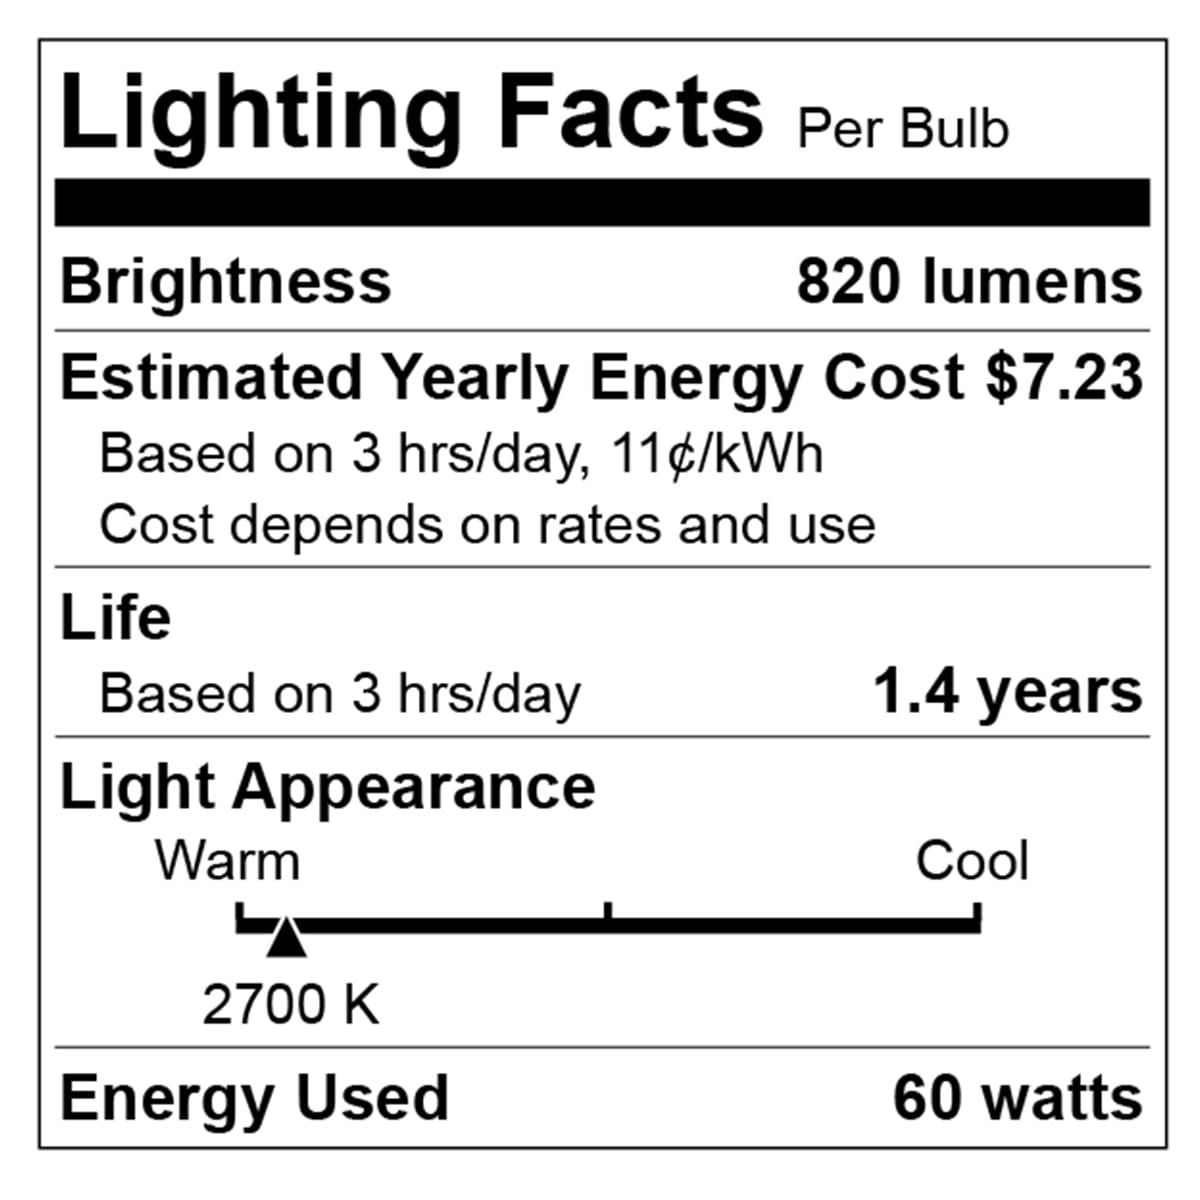 What Are Lumens? Lumens Chart, Definition & Light Bulb Facts